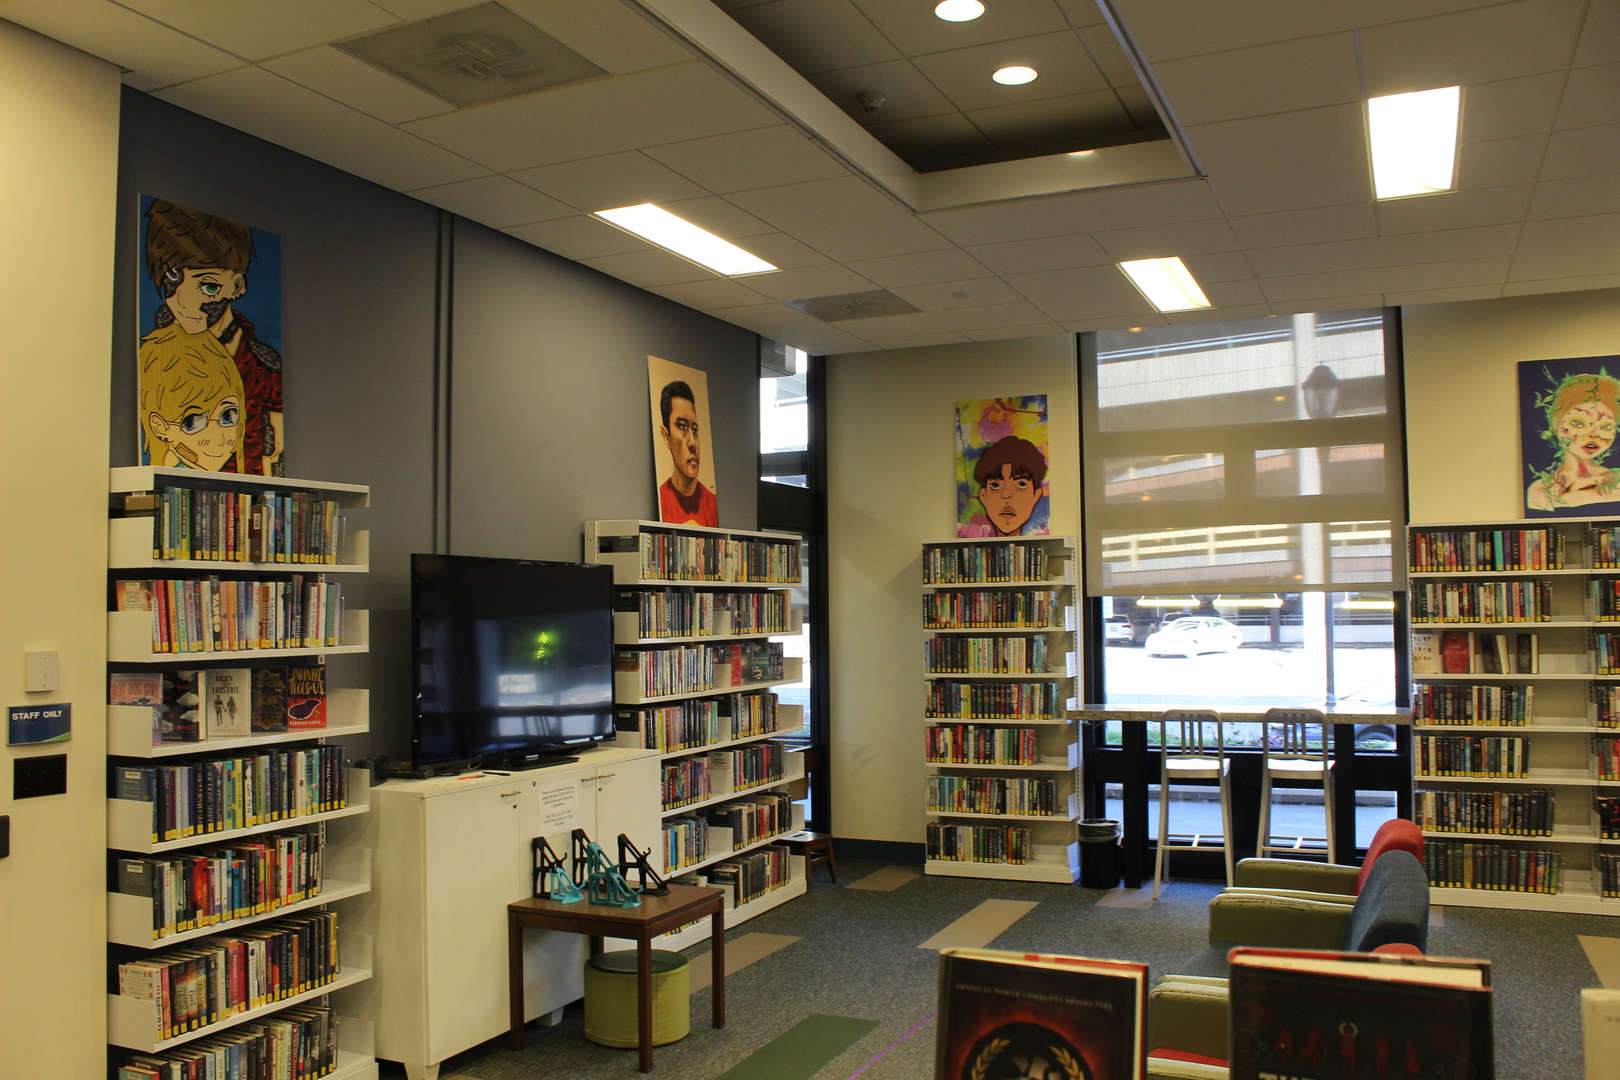 Art displayed above shelves in library